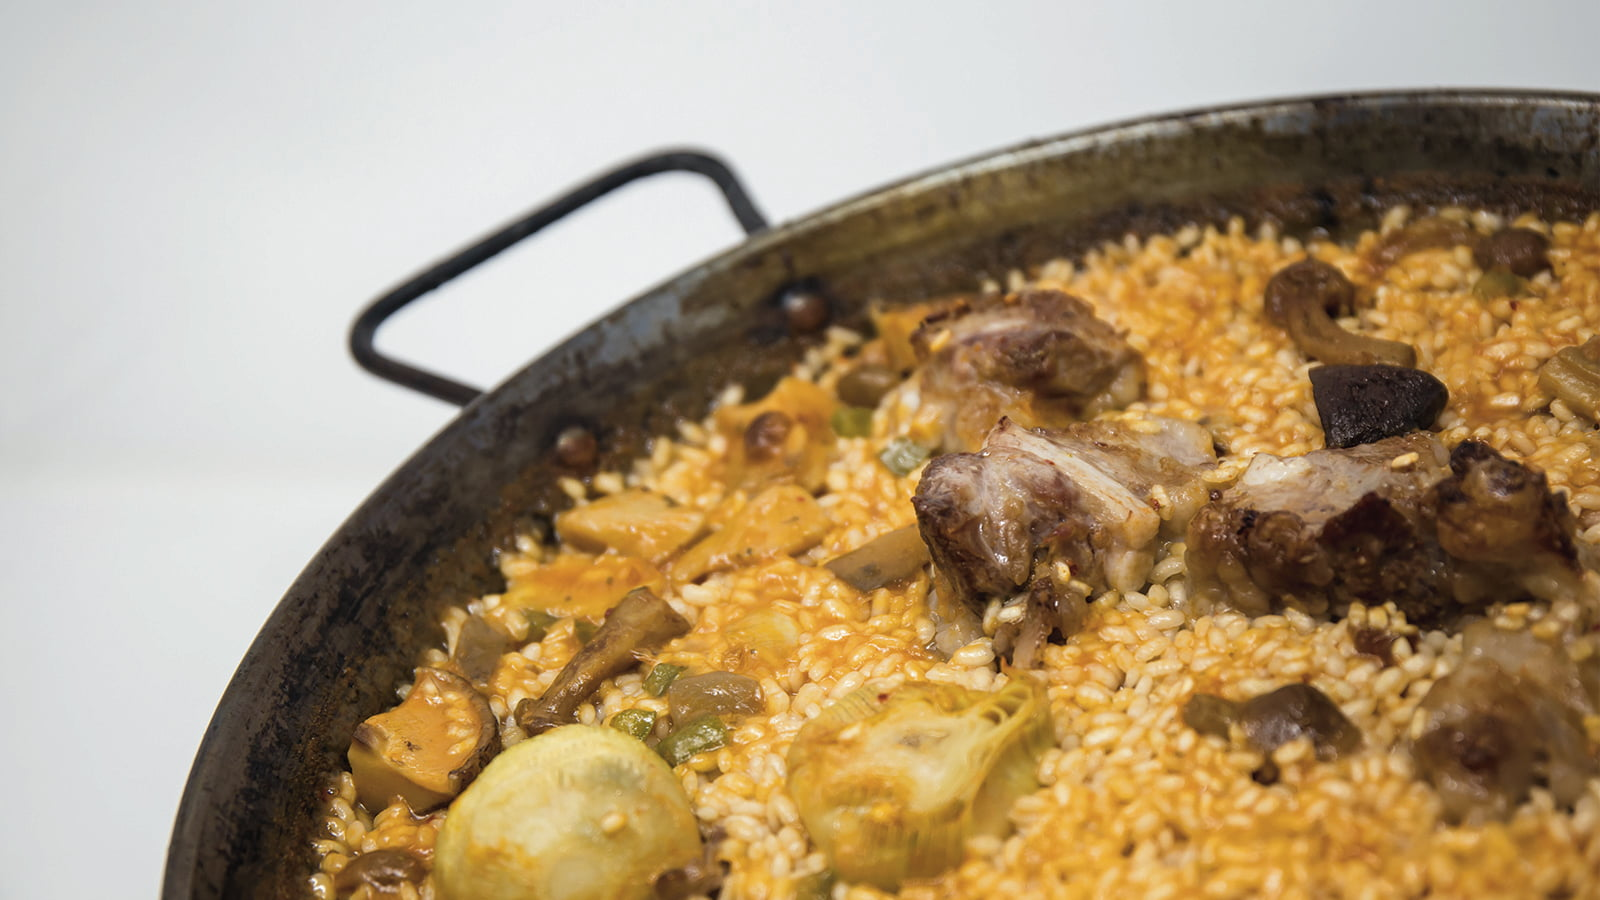 Exquisita paella – Arrozes